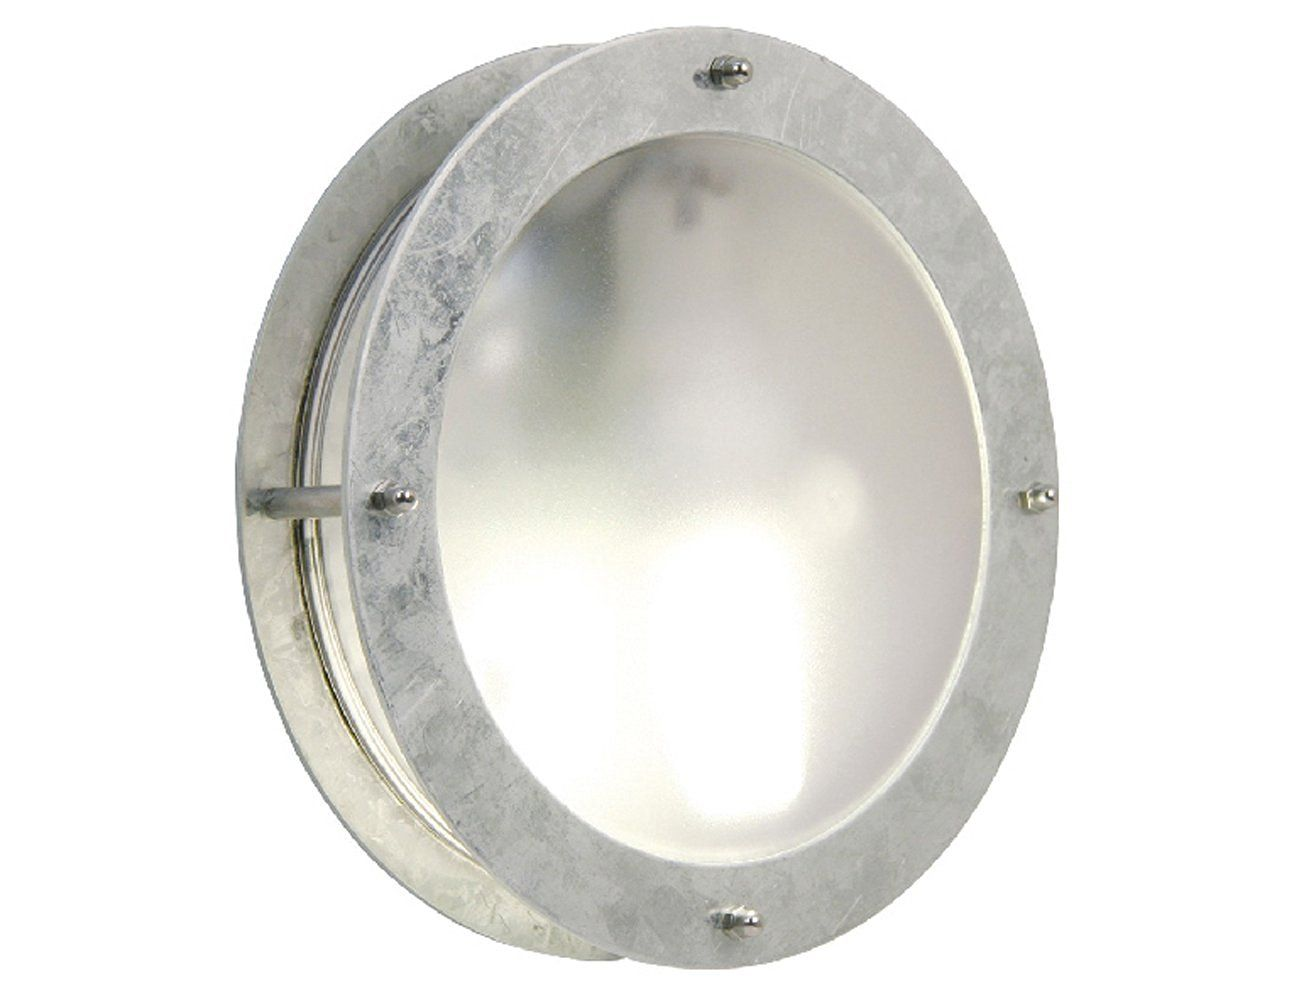 Nordlux malte outdoor galvanized steel round wall light with port